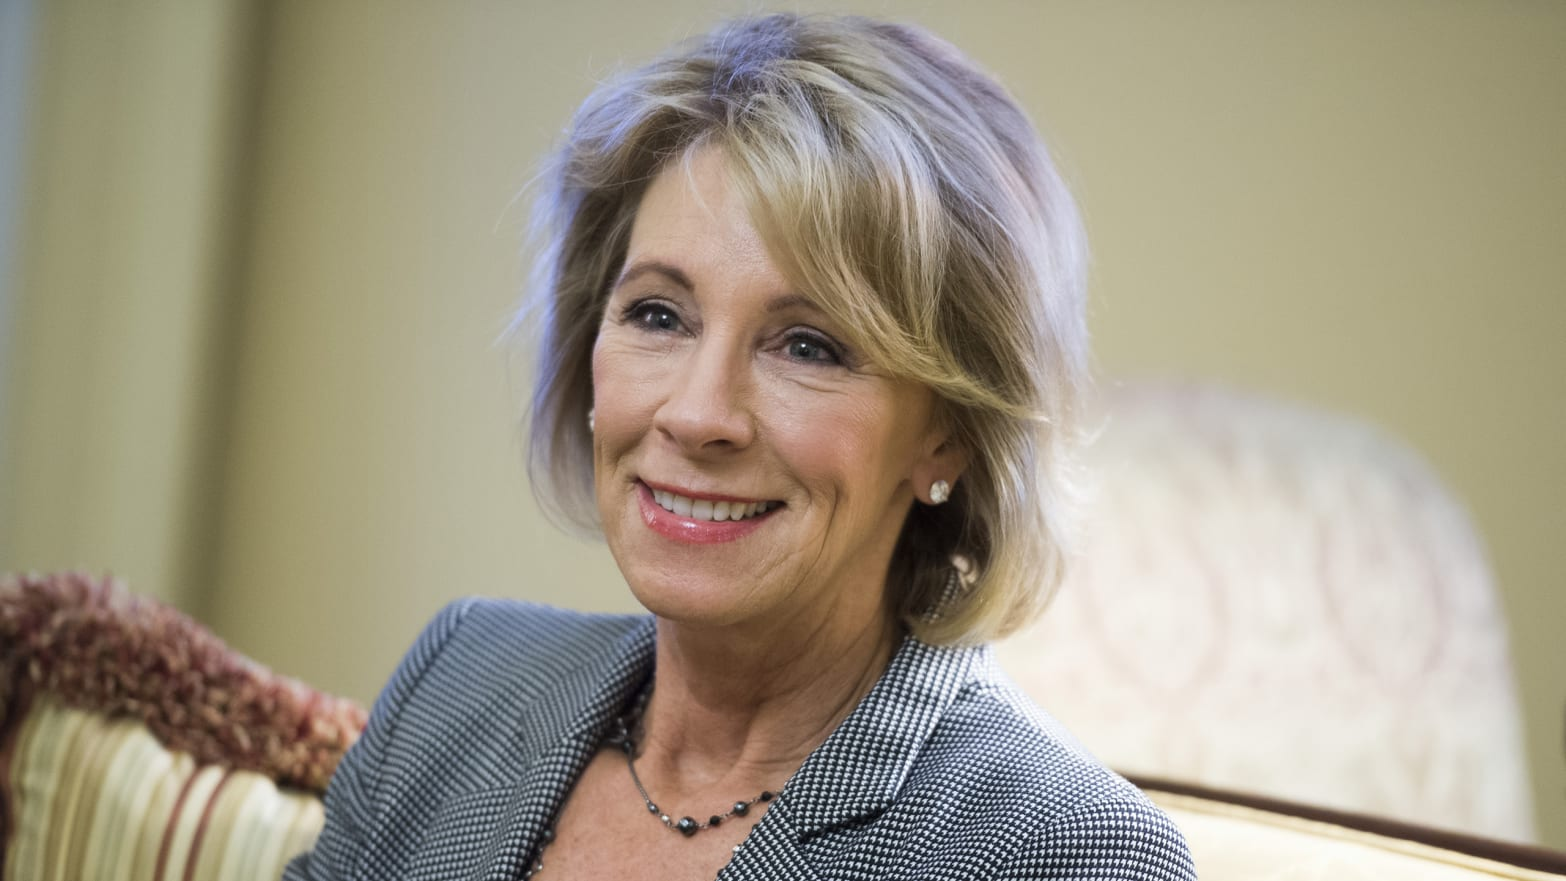 Betsy Devos Trumps Education Pick Has >> Betsy Devos Fight Demonstrates Donald Trump S Serious About Changing